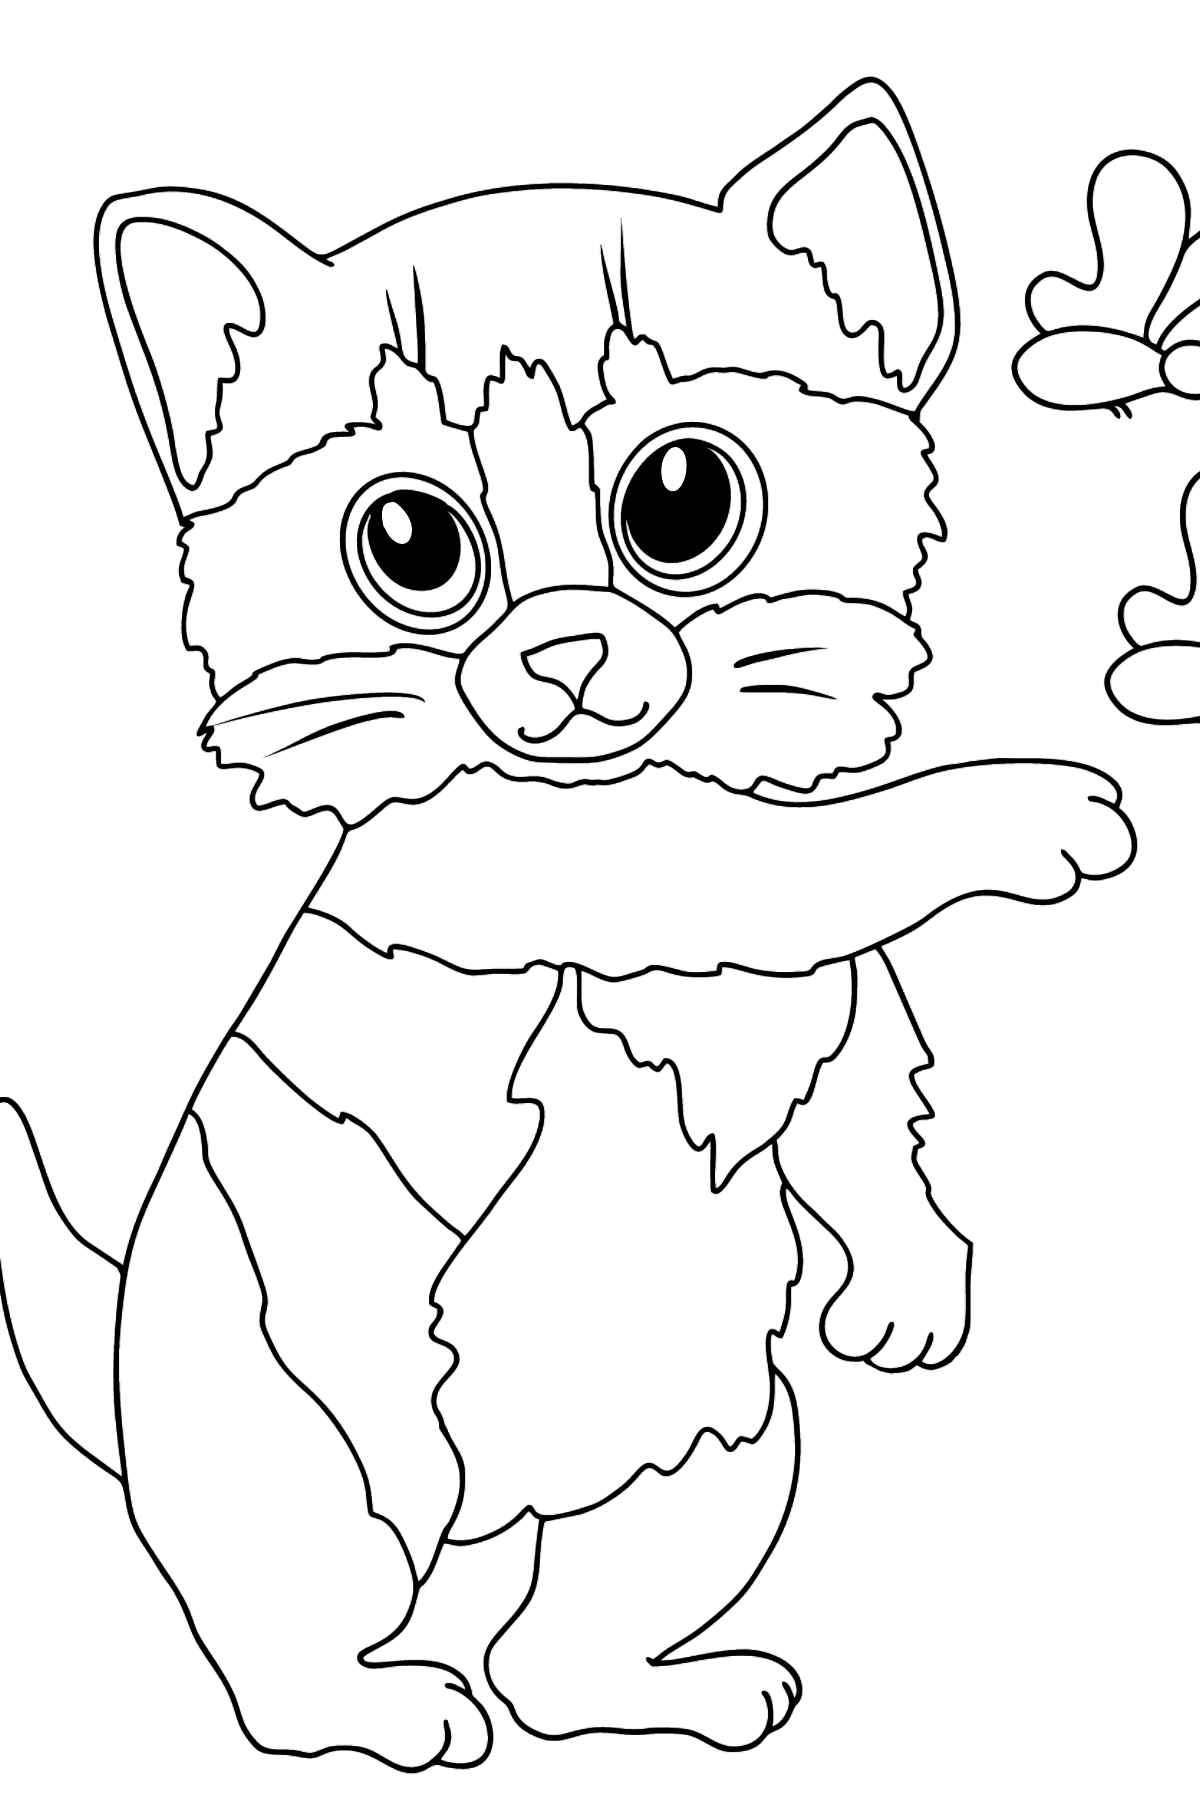 Coloring Page - A Kitten has Tamed Butterflies - Coloring Pages for Kids